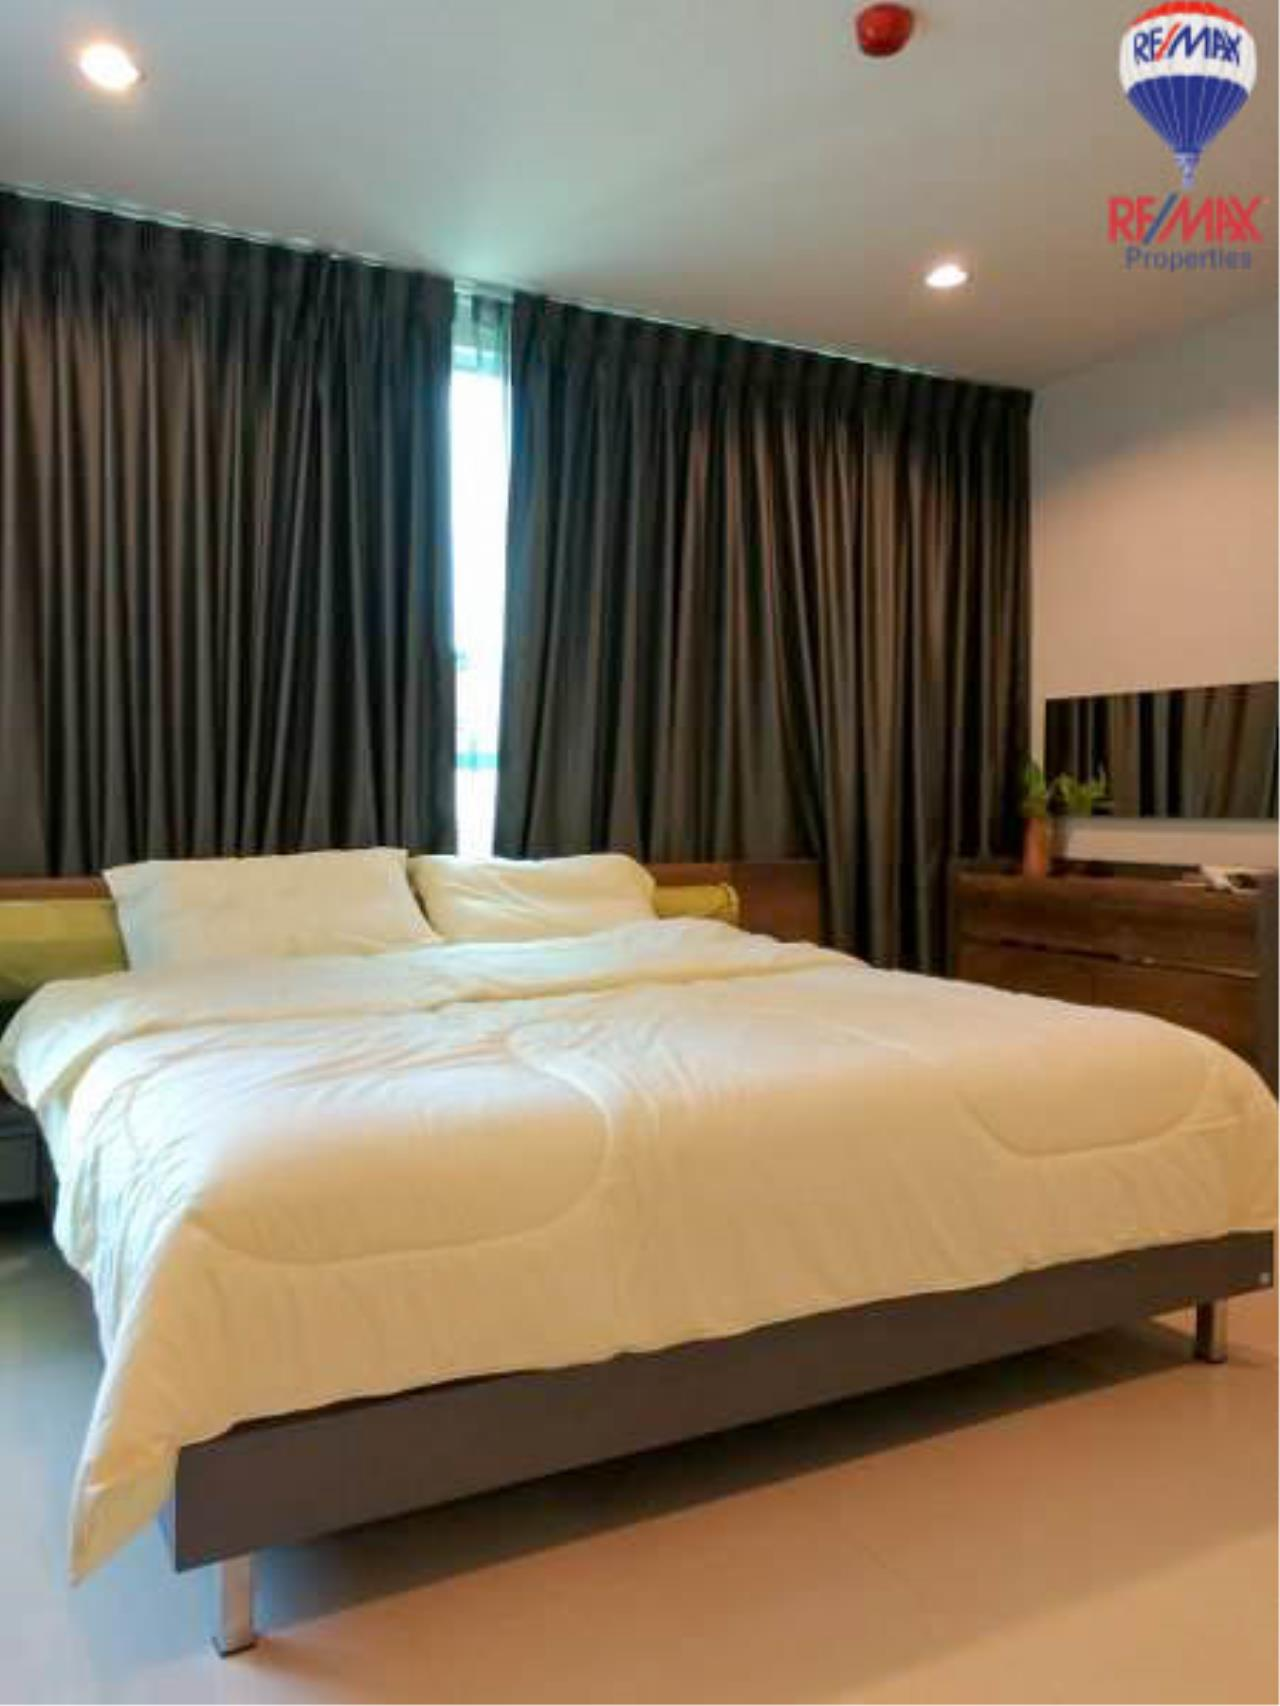 RE/MAX Properties Agency's 1 Bedroom 60 Sq.M. for sale in Sukhumvit Living Town 2